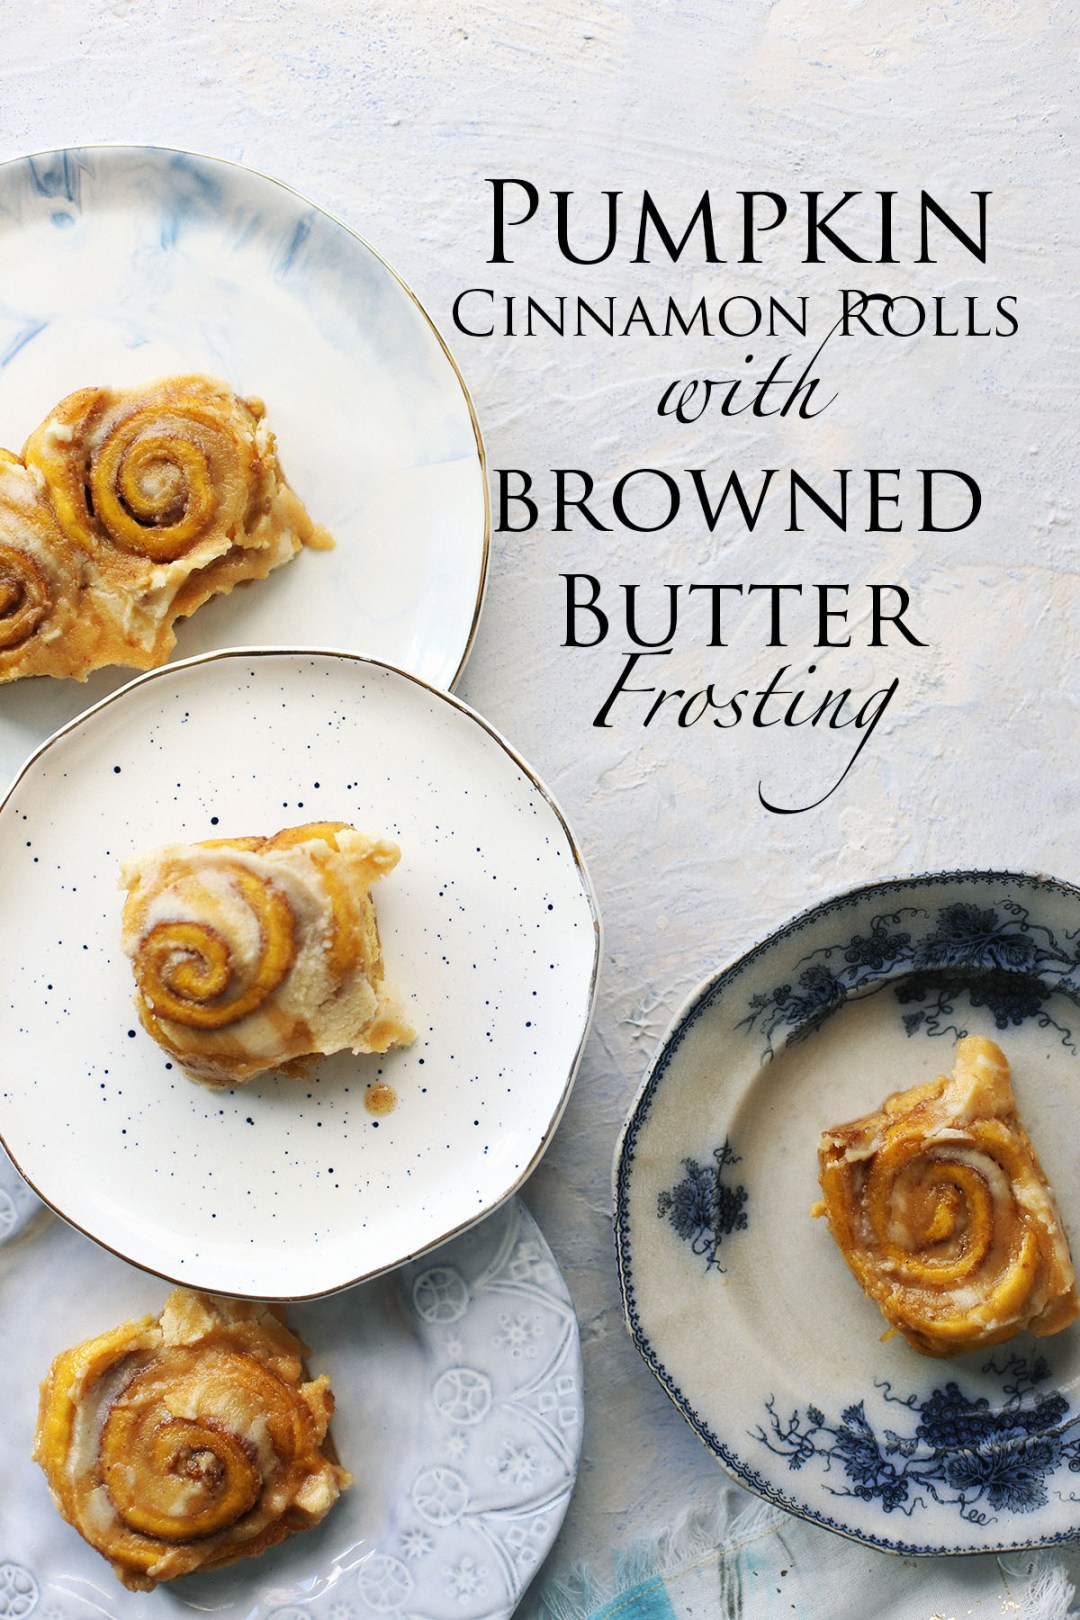 Pumpkin Cinnamon Rolls with Browned Butter Frosting